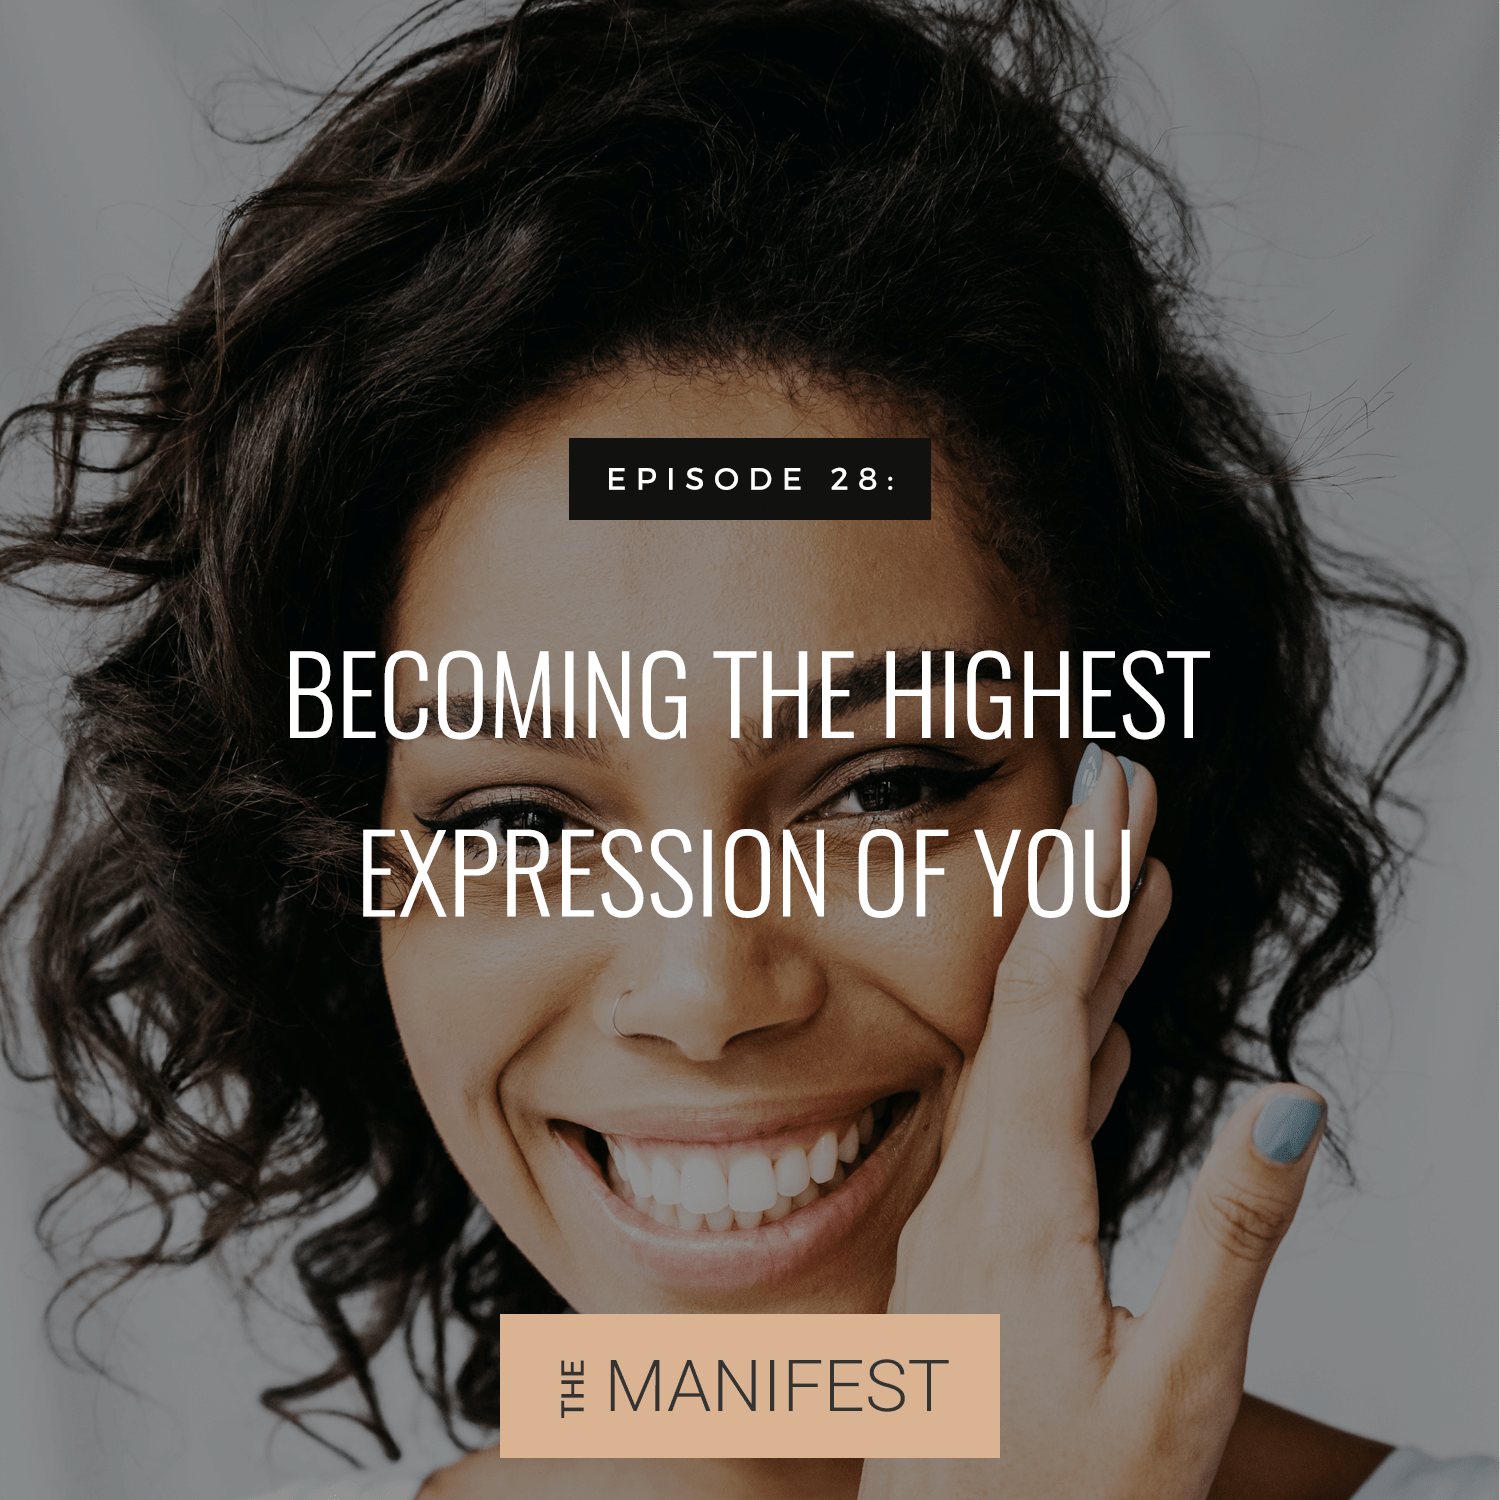 woman smiling with text Episode 38: Becoming The Highest Expression Of You